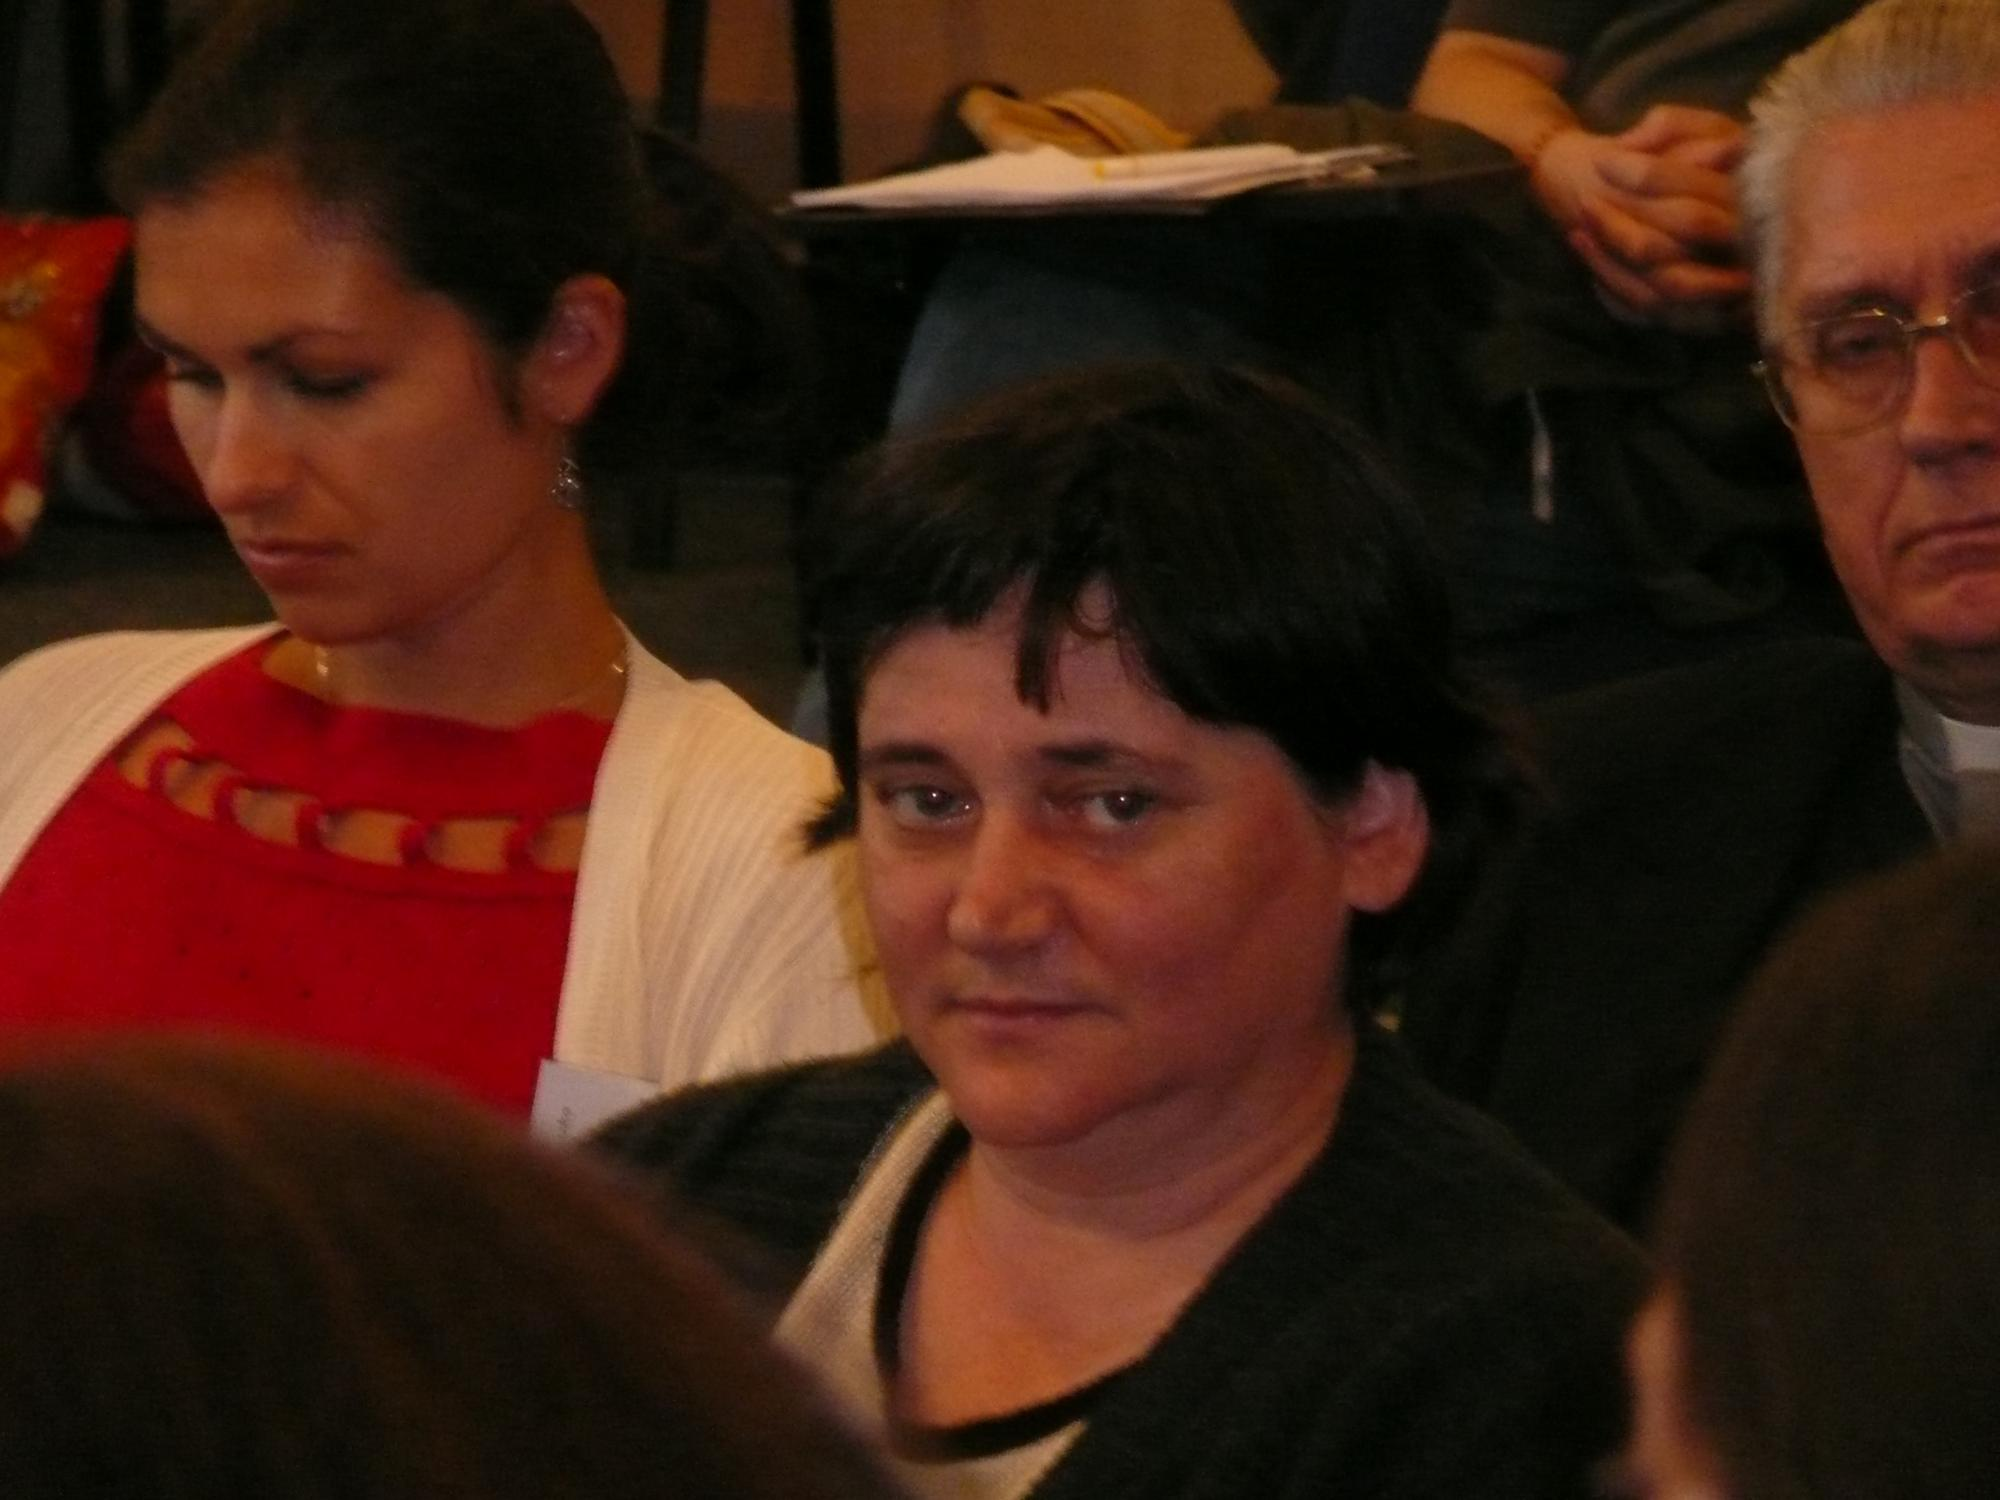 Participant from Belarus 2009